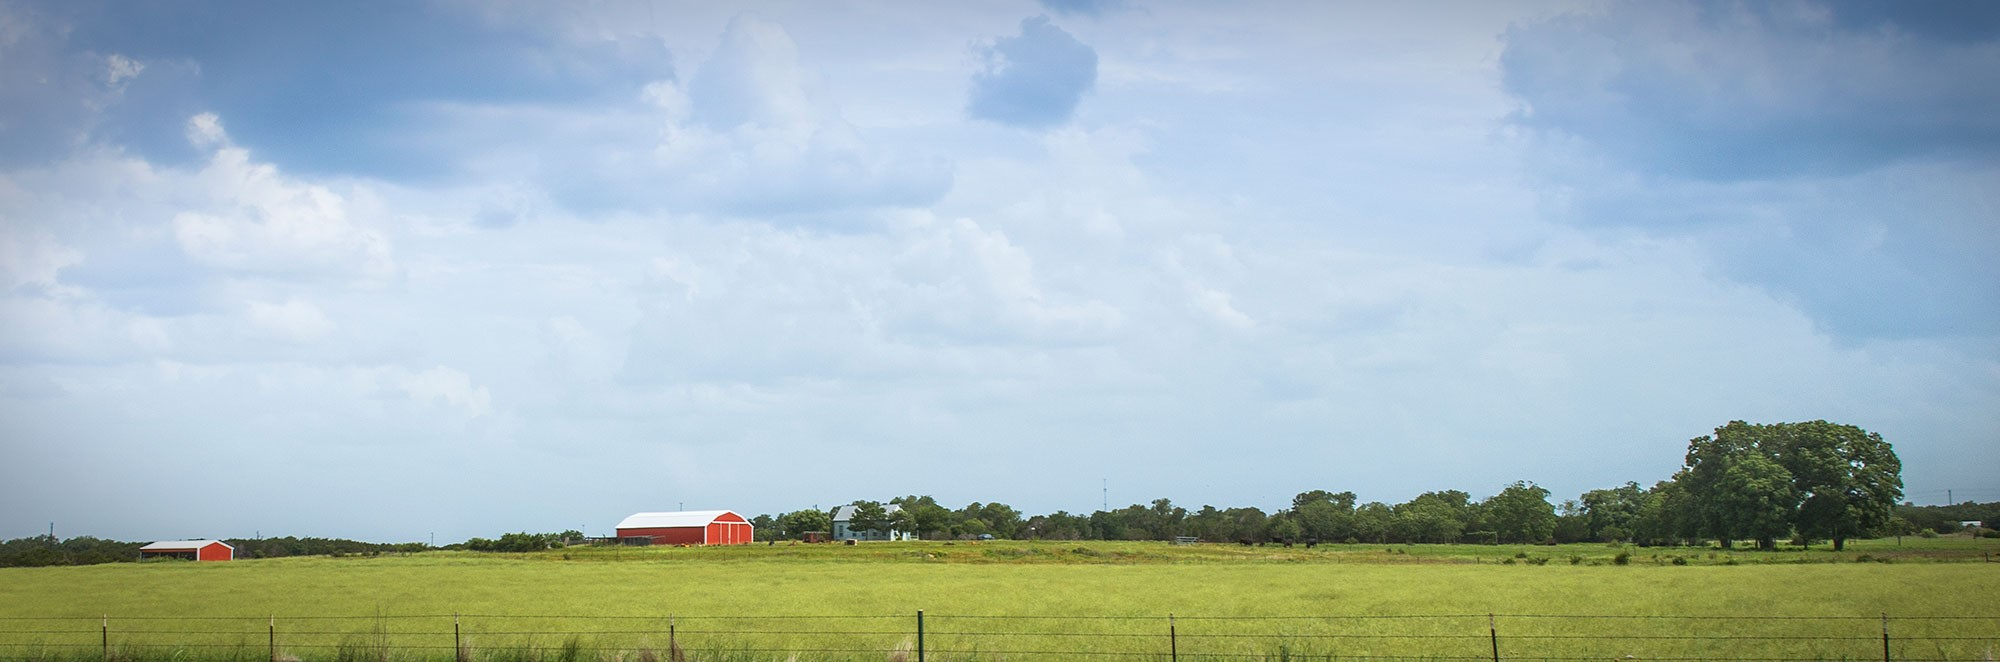 Texas summer crop